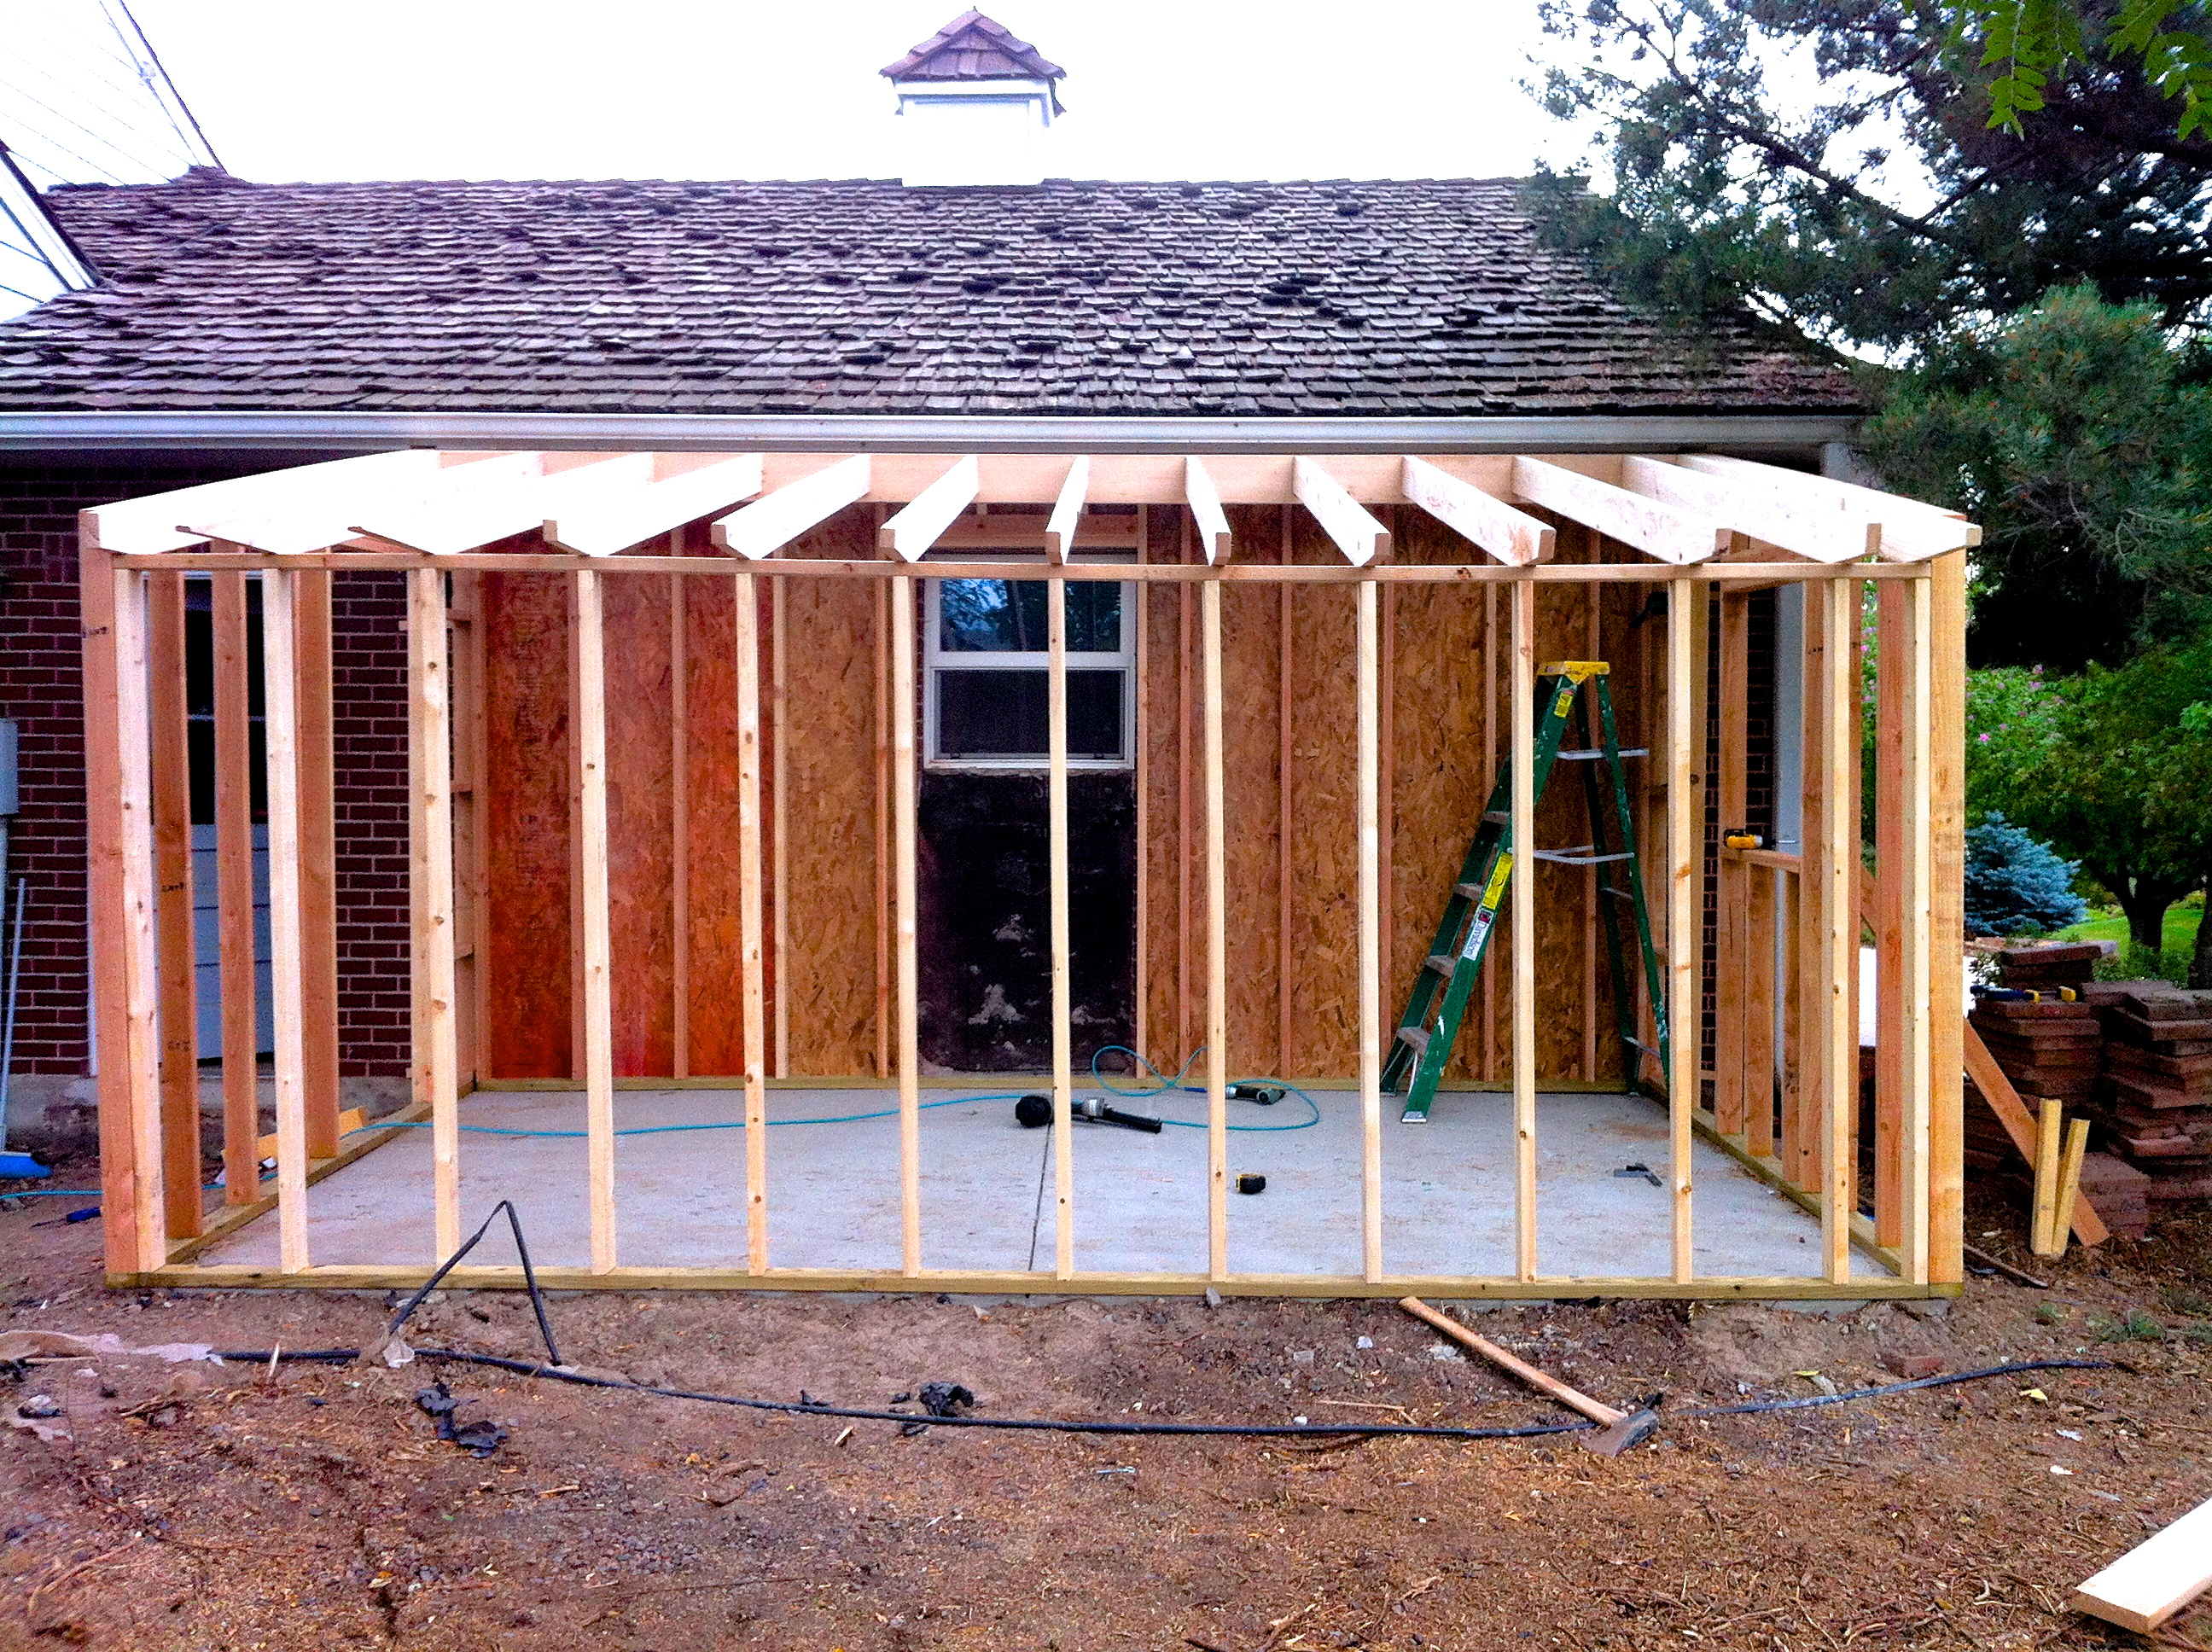 February 2015 shed plans for free for Building a storage shed